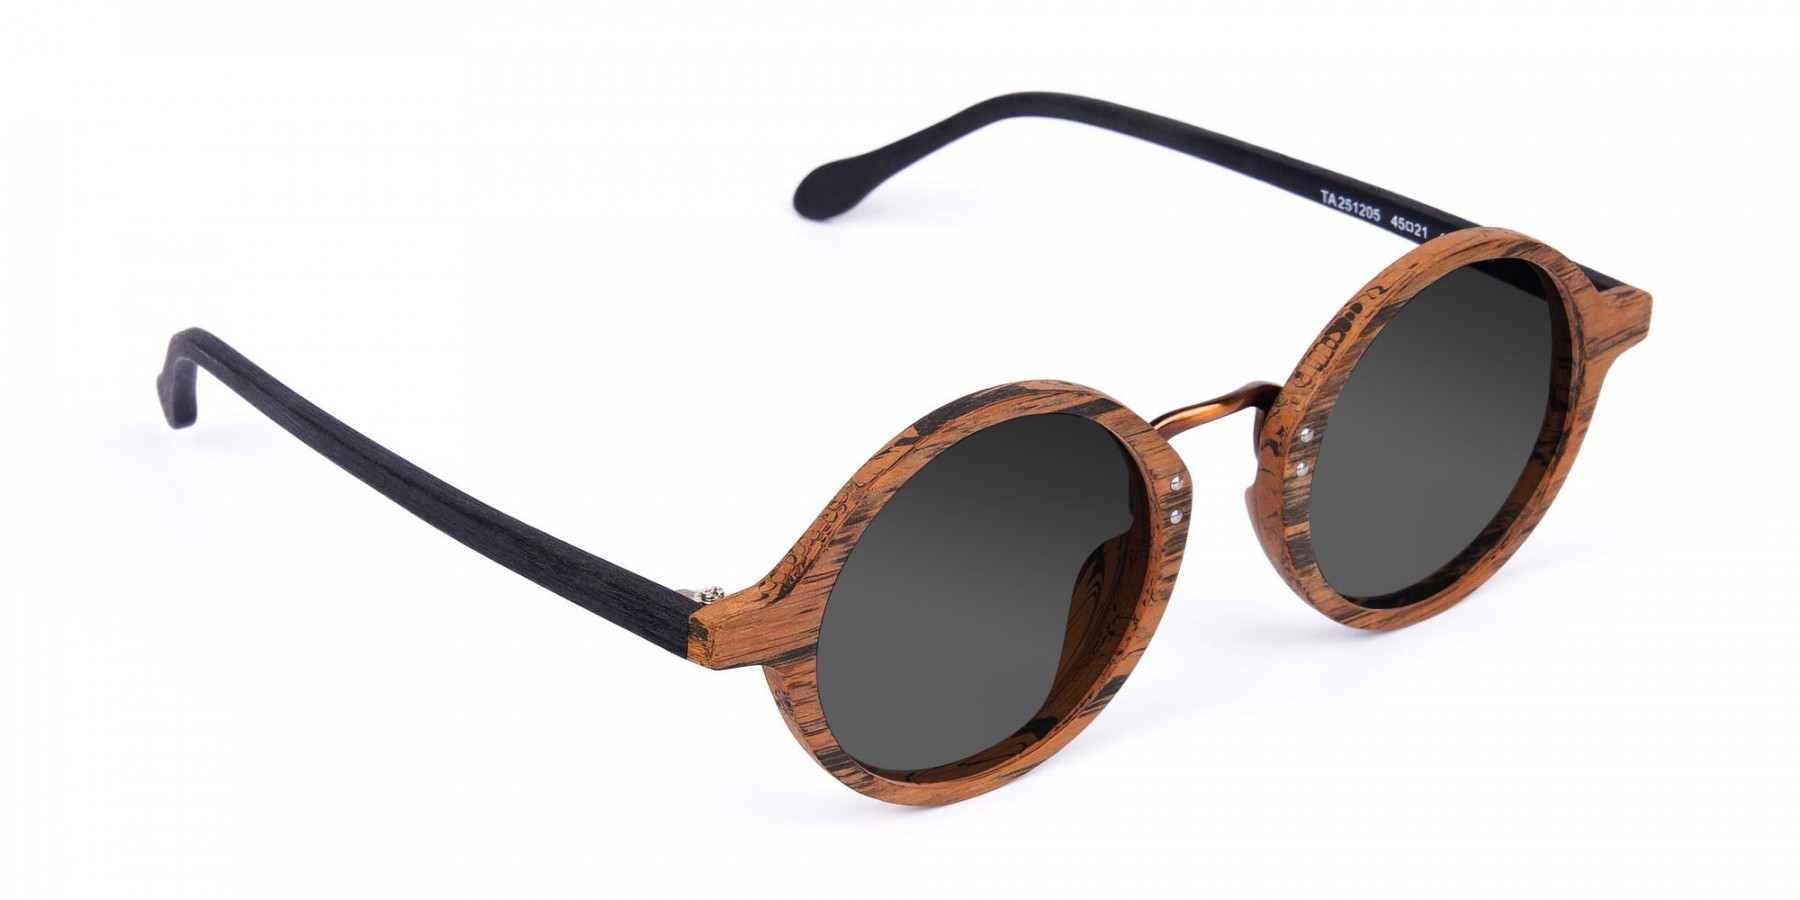 Round-Brown-Wood-Sunglasses-With-Grey-Tint-3